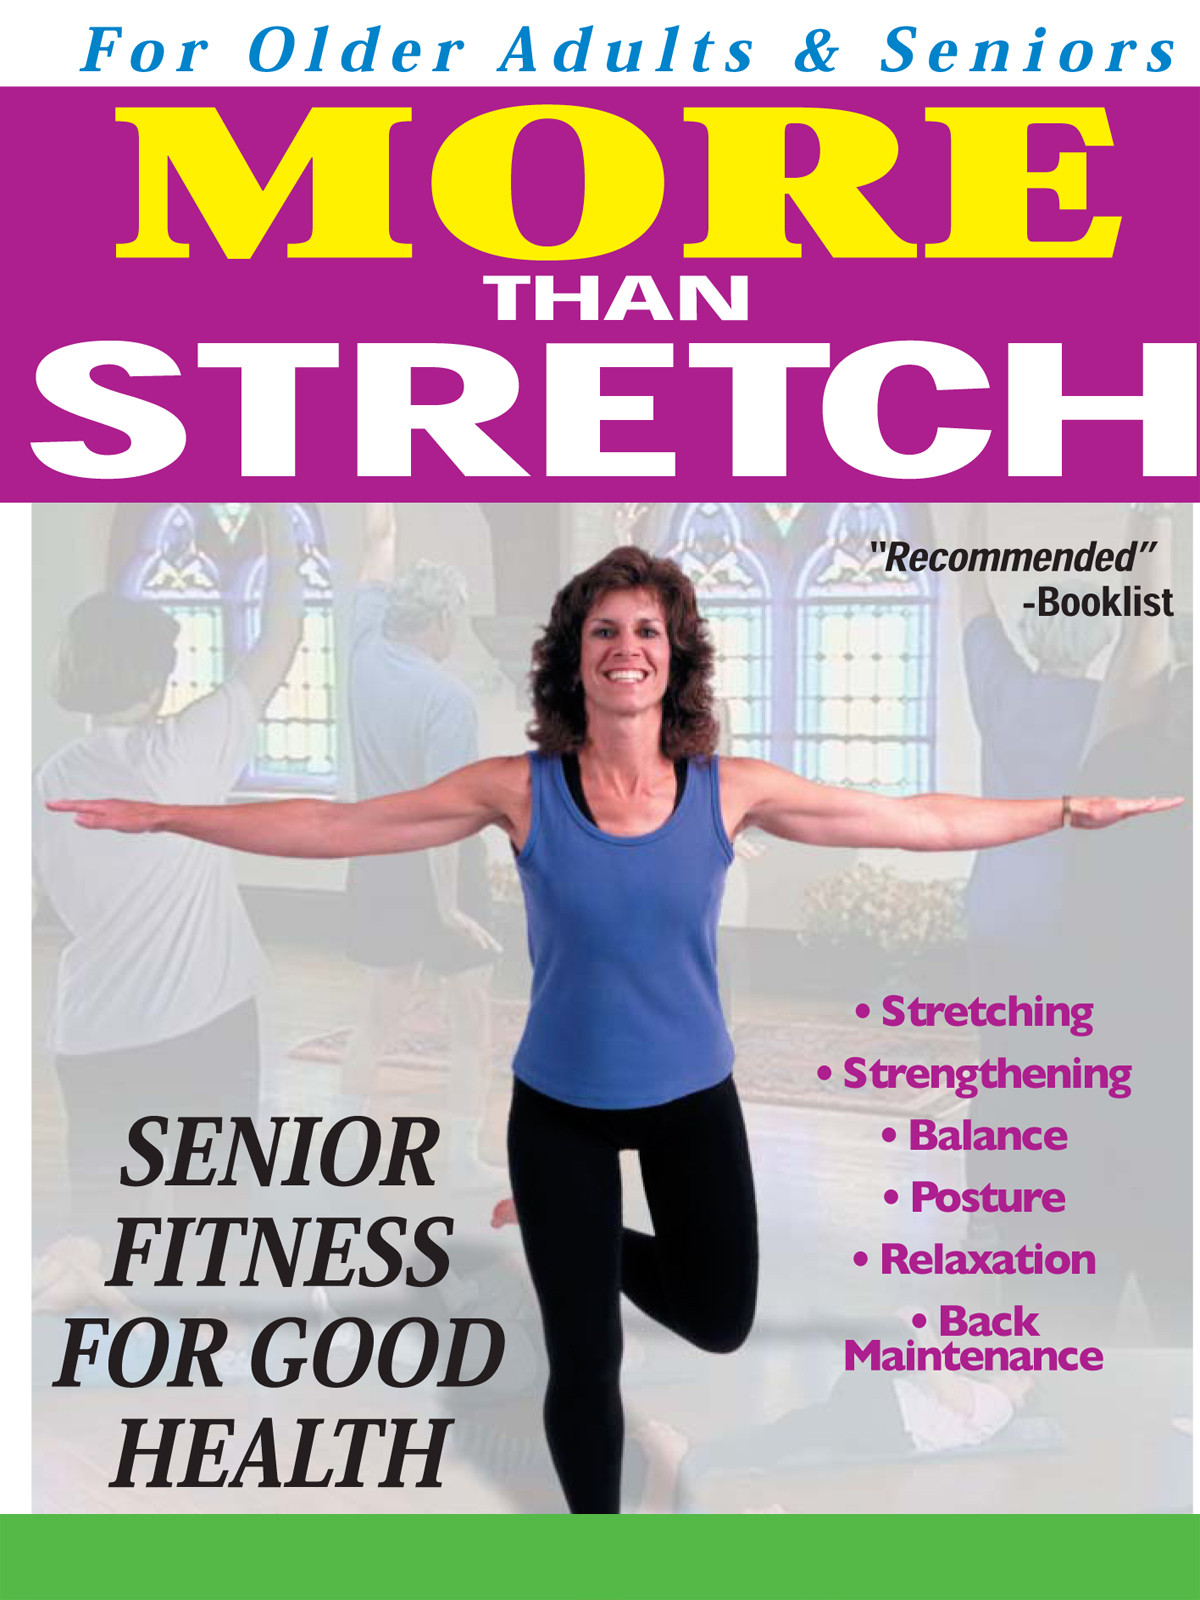 A7002 - More Than Stretch Senior Fitness for Good Health